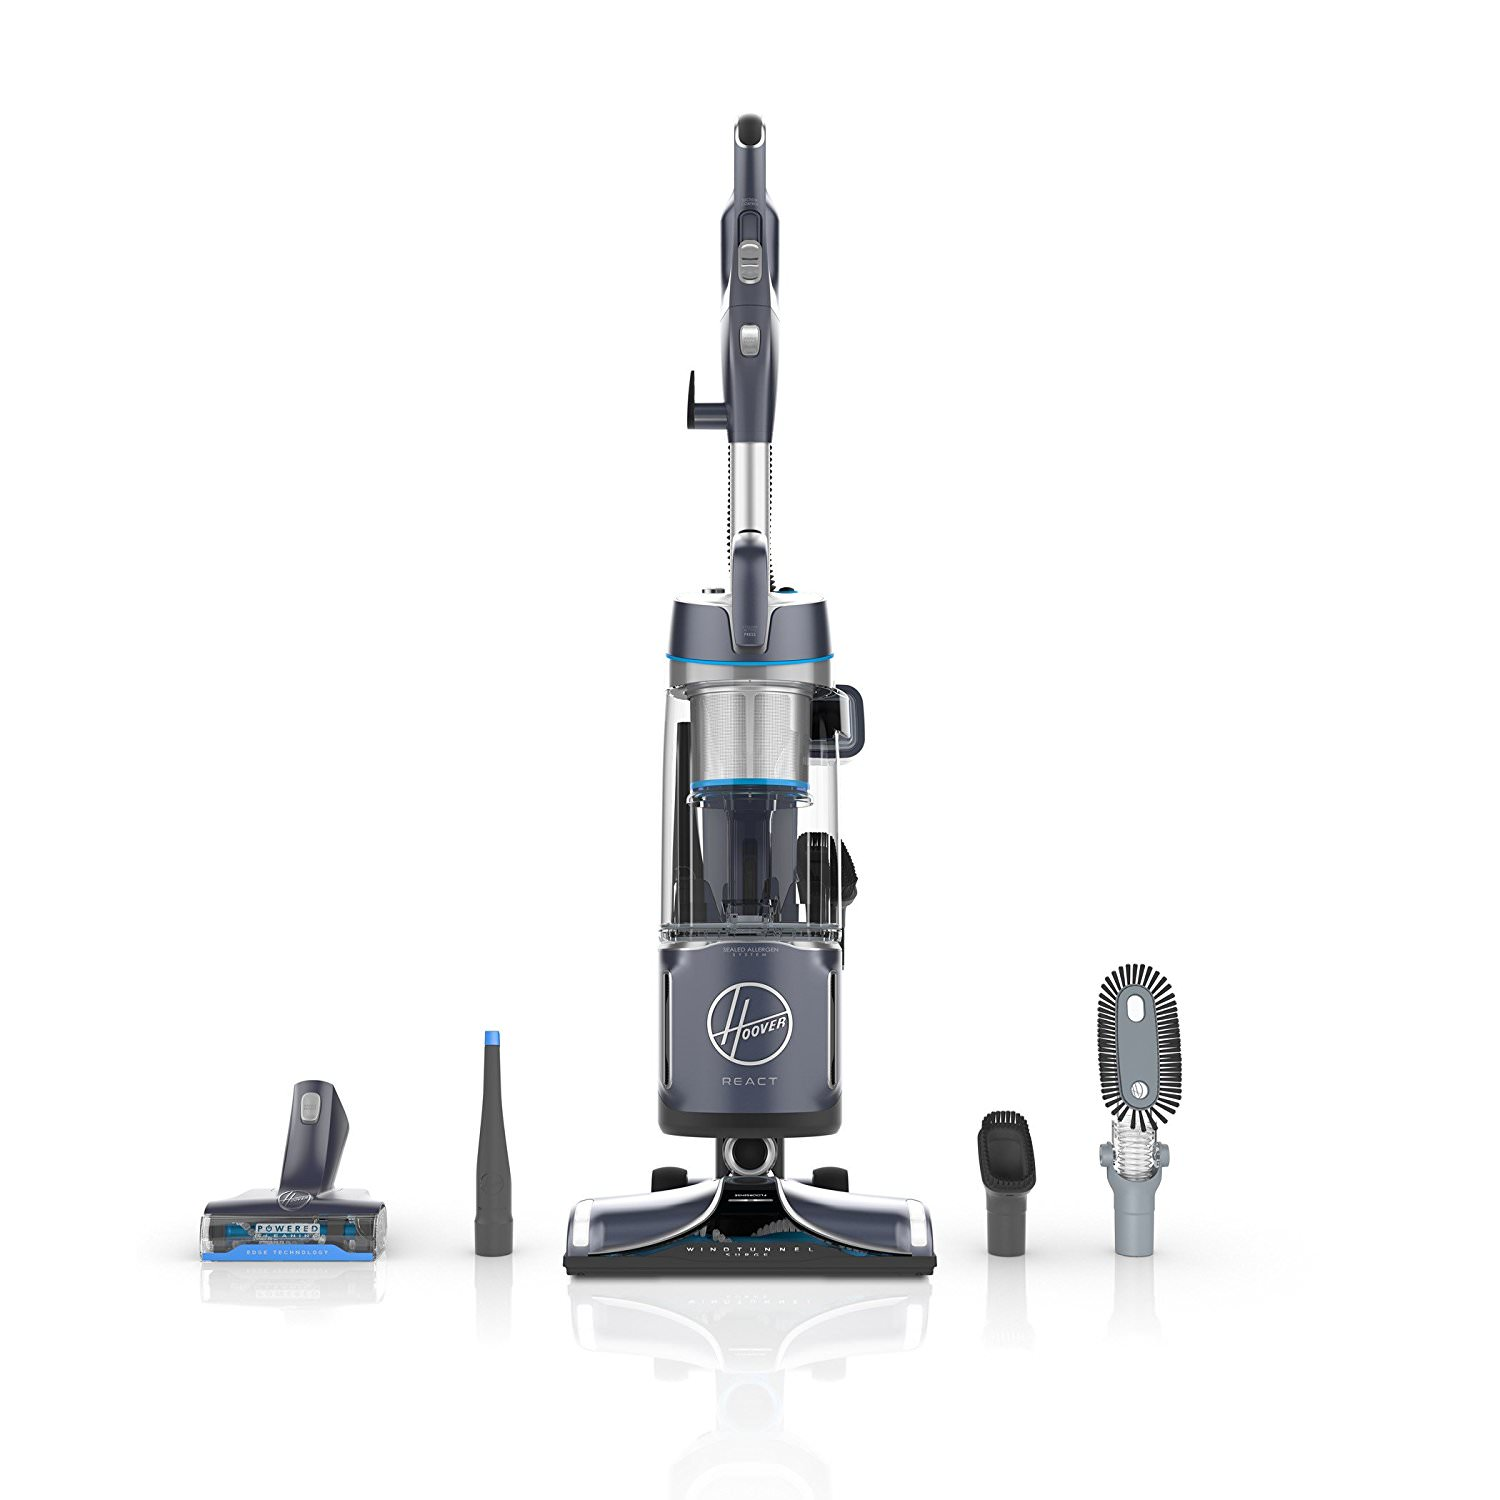 Hoover REACT Powered Reach Plus Bagless Upright Vacuum